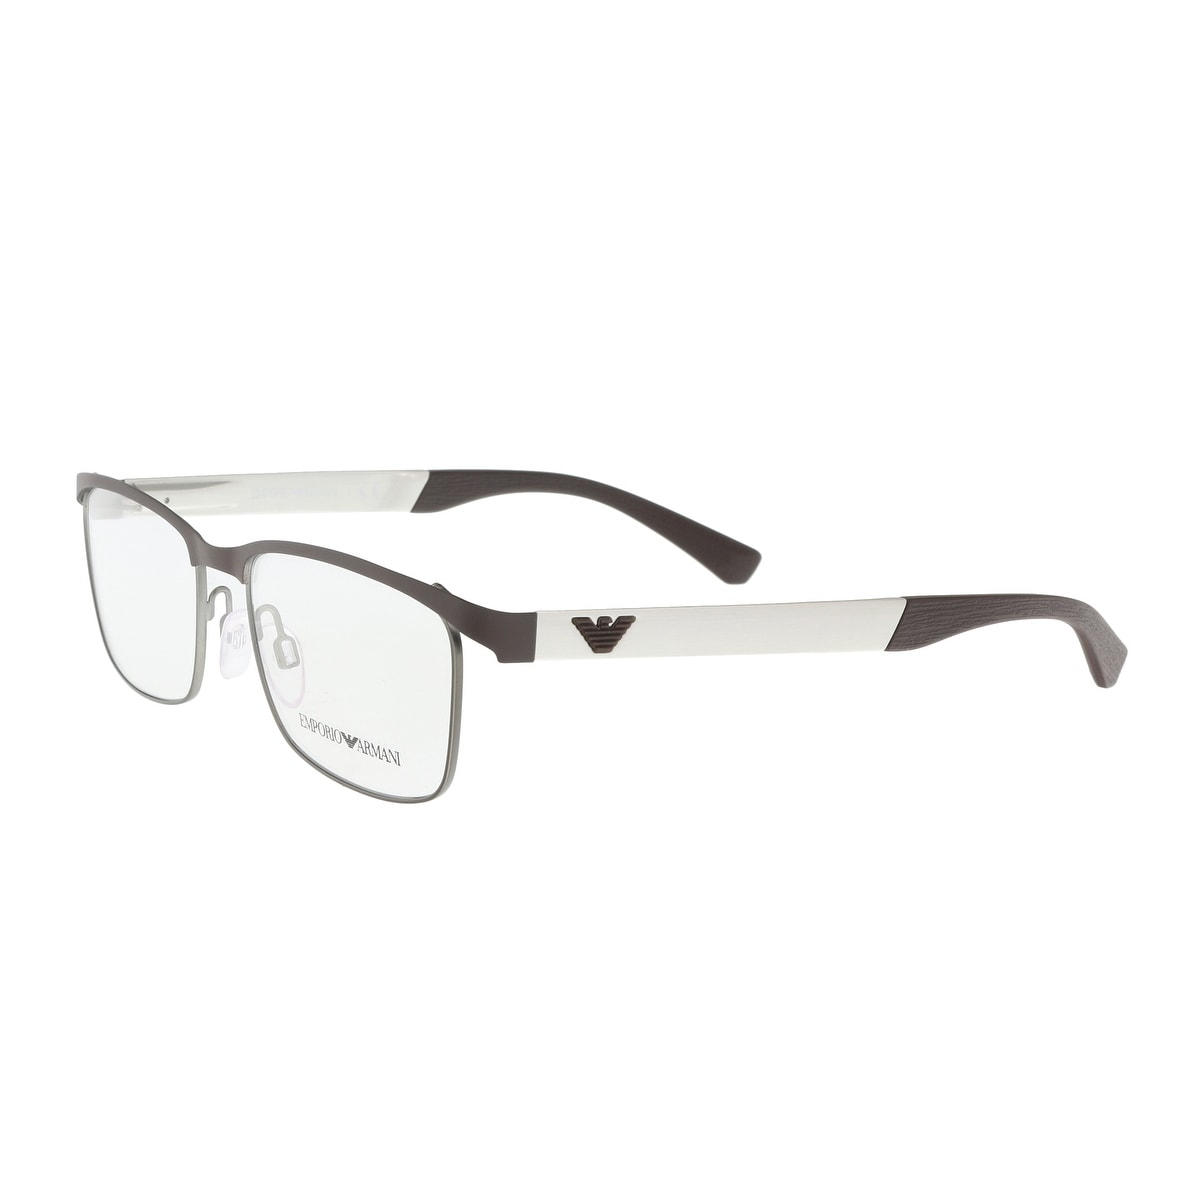 587e51a46c3a Emporio Armani Eyeglasses | Find Great Accessories Deals Shopping at  Overstock